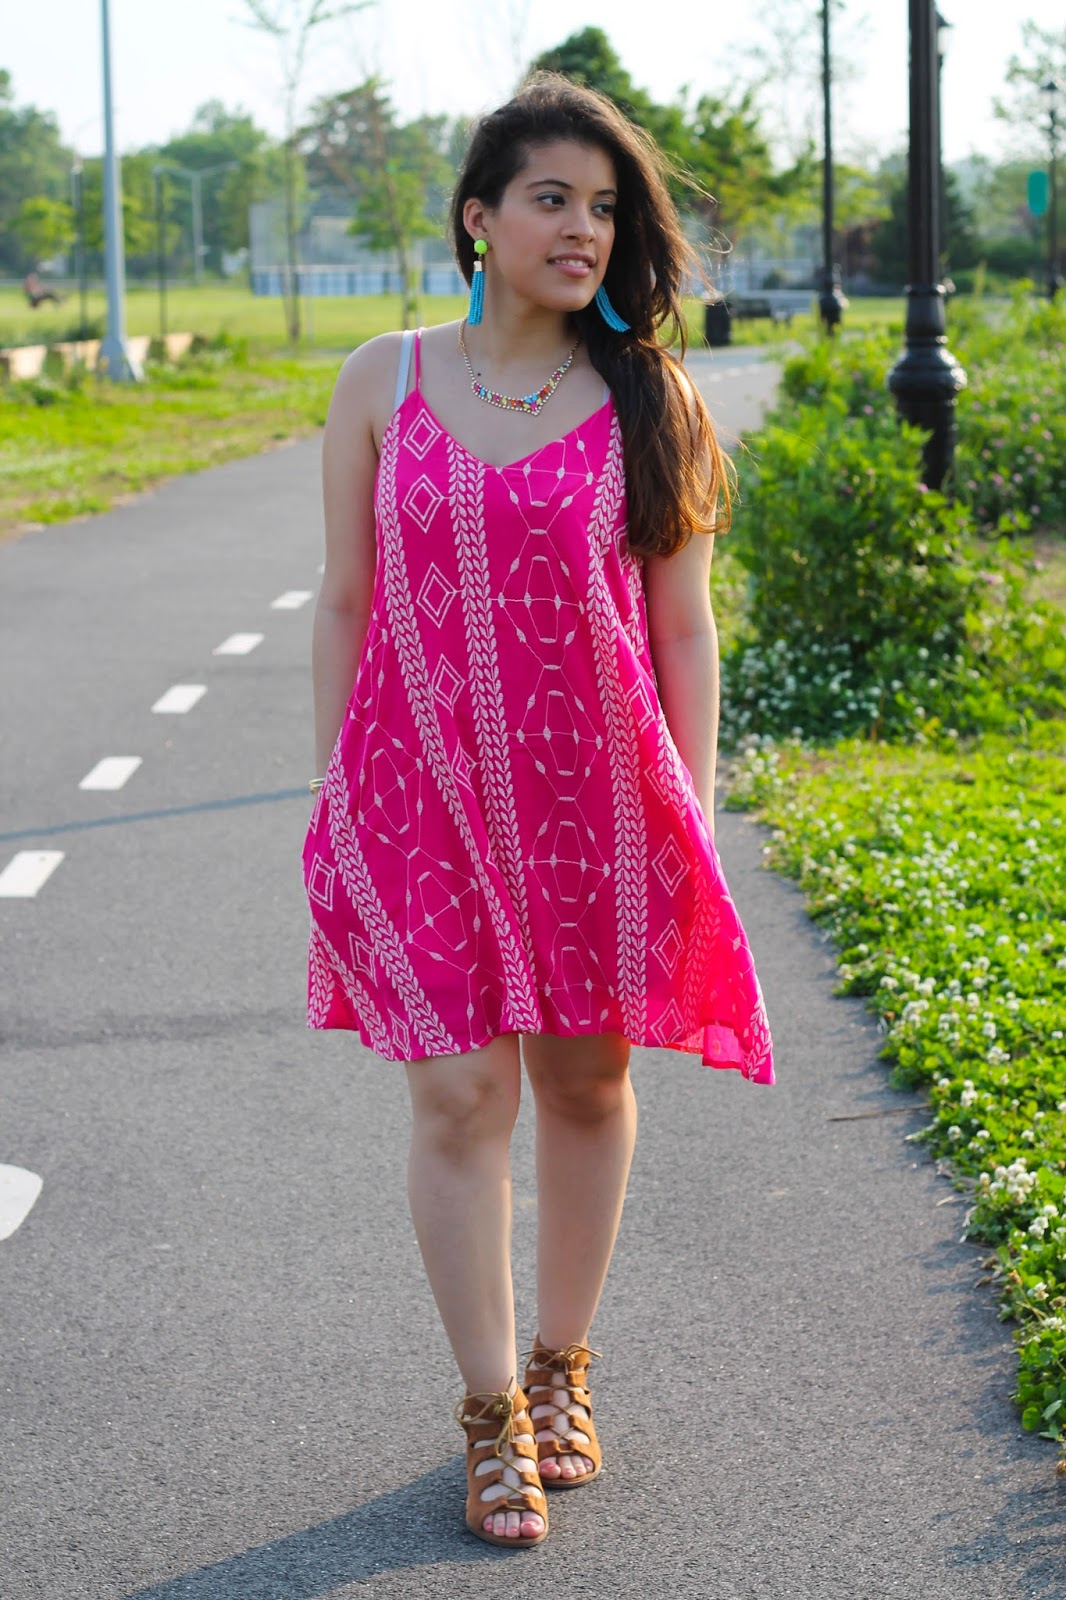 The Mint Julep Boutique: Bright Fuchsia Summer Dress.